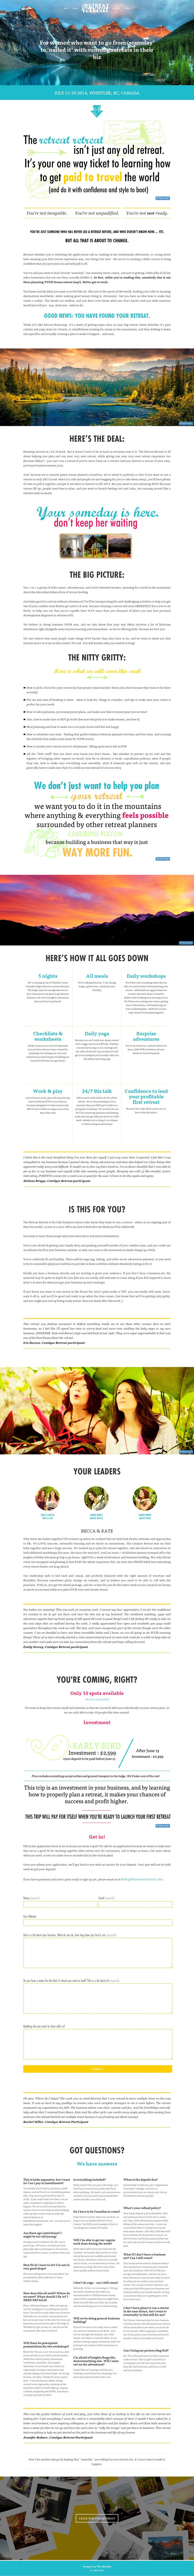 14 best sales pages landing pages images on pinterest design the retreat retreat designed by lis dingjan at the identity fandeluxe Image collections